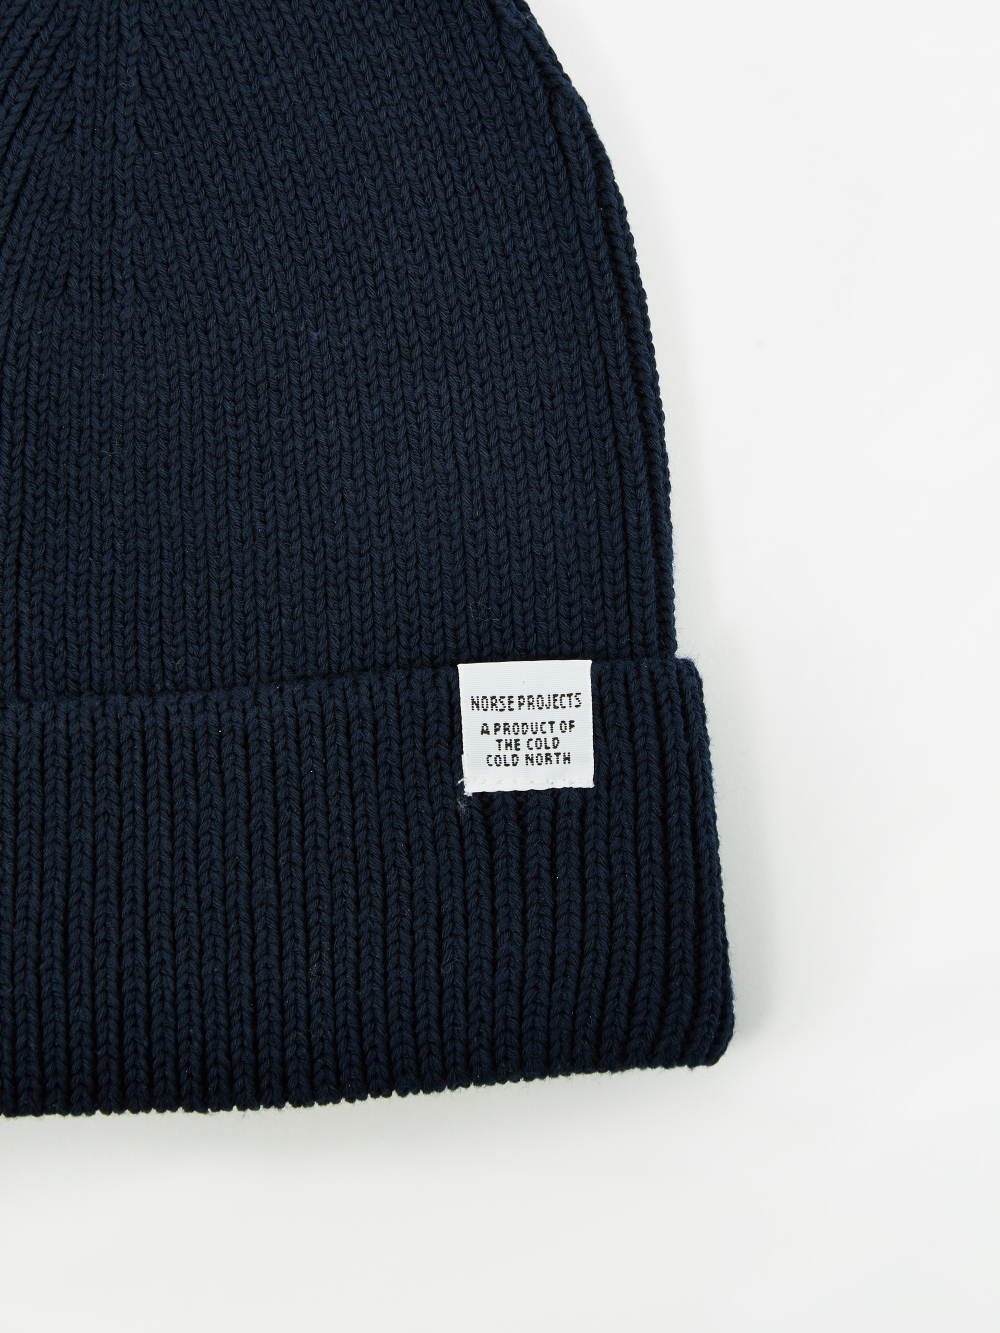 4a9eafdc8 Norse Projects Cotton Watch Beanie - Dark Navy